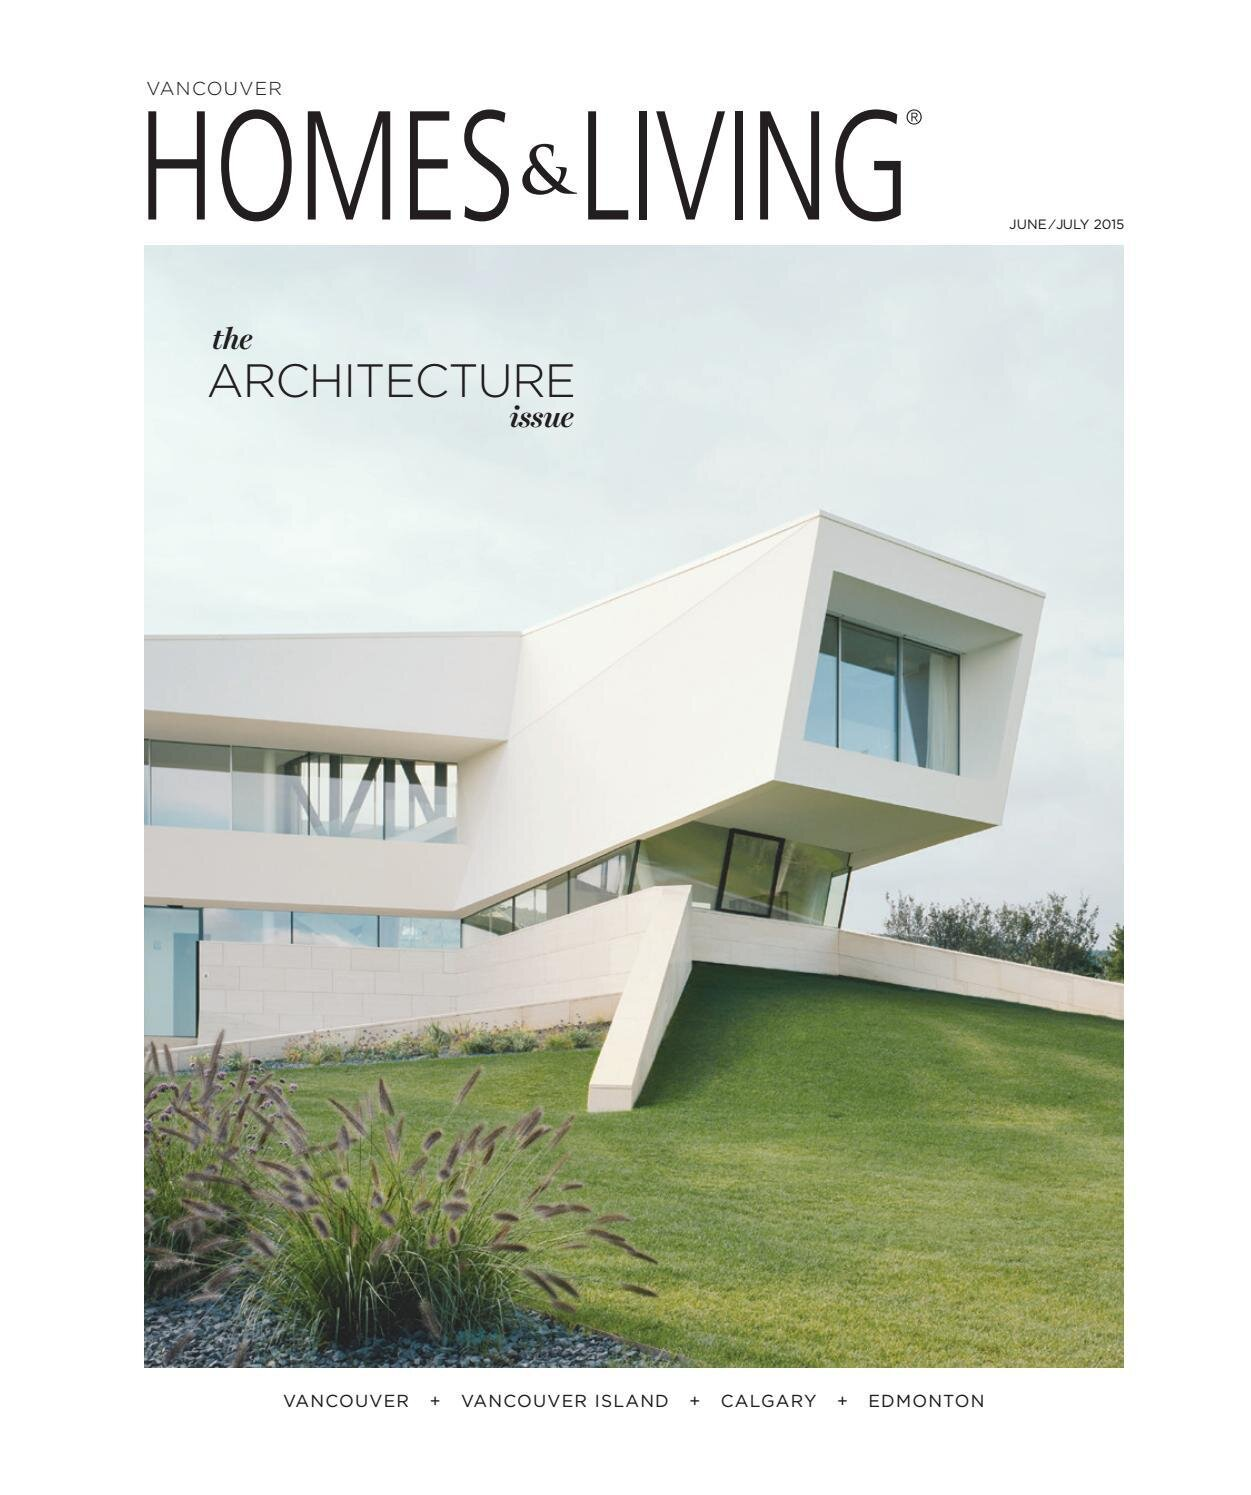 Far out homes - Integrated modern architecture and garden design - Coverstory in print magazine Homes & Living